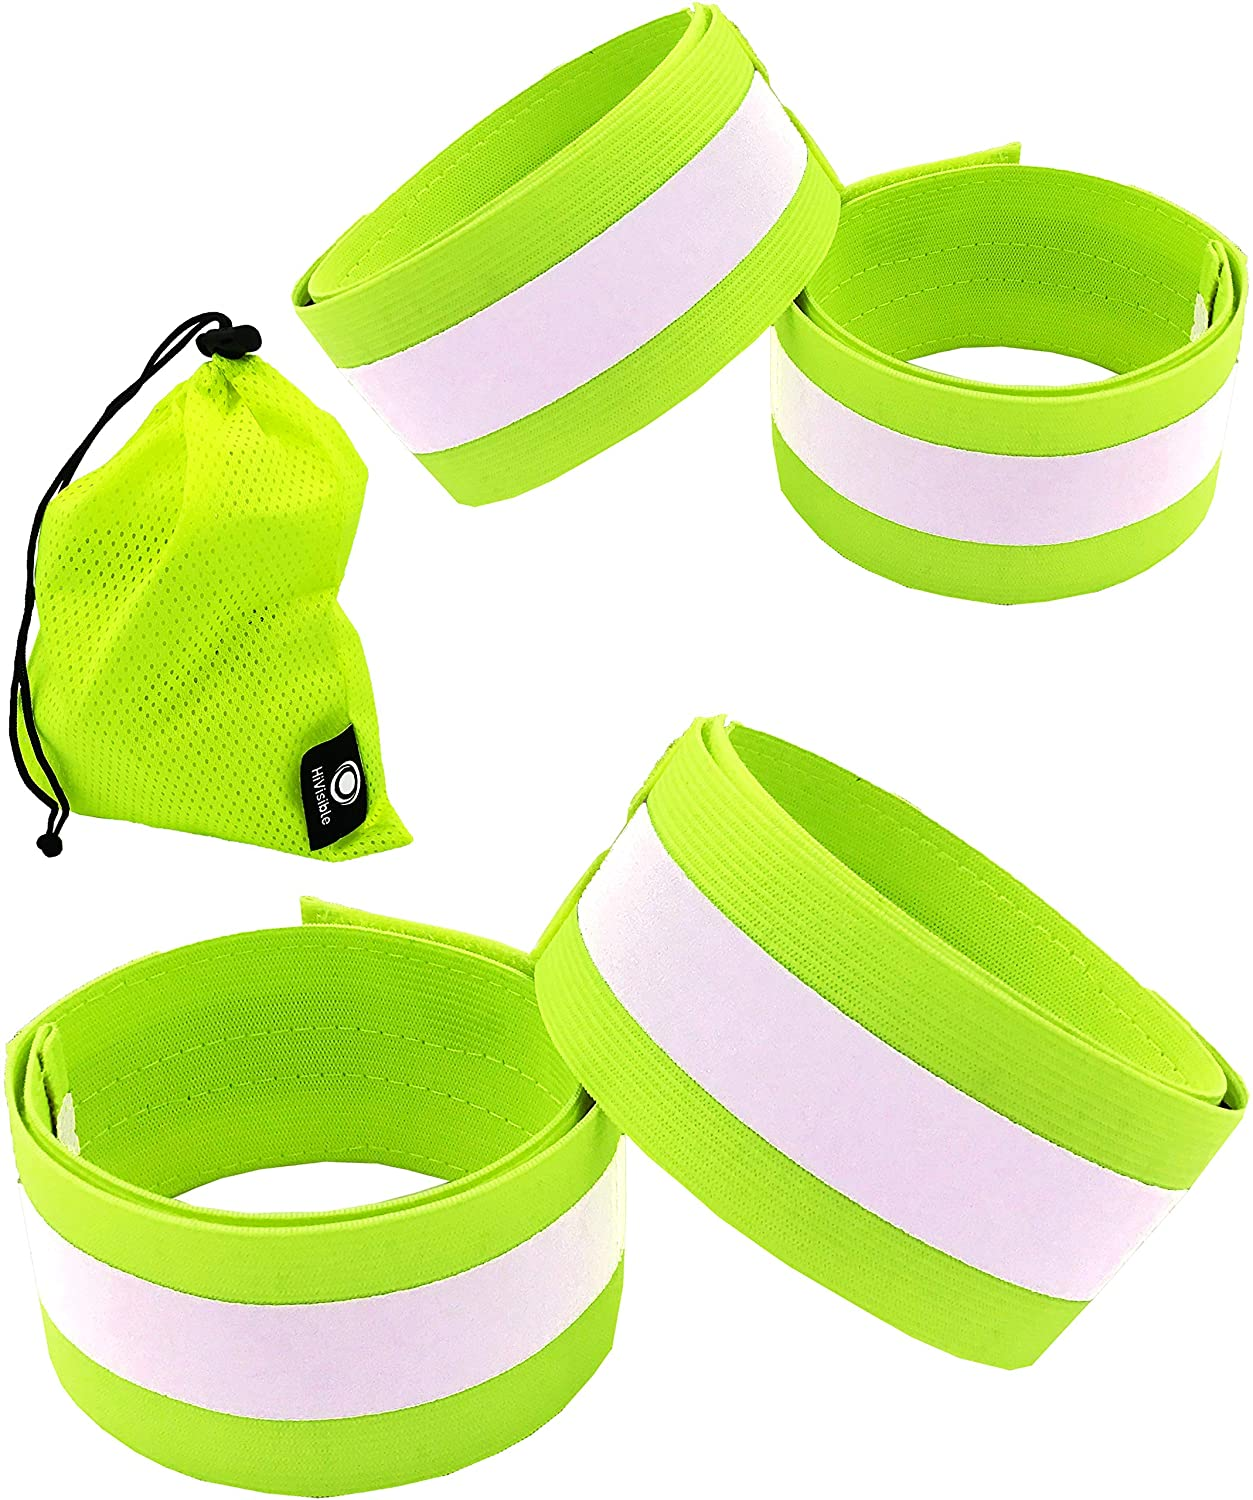 Reflective Bands for Arm Wrist Bands. Ranking TOP8 Hi Reflector Ankle Leg. Price reduction